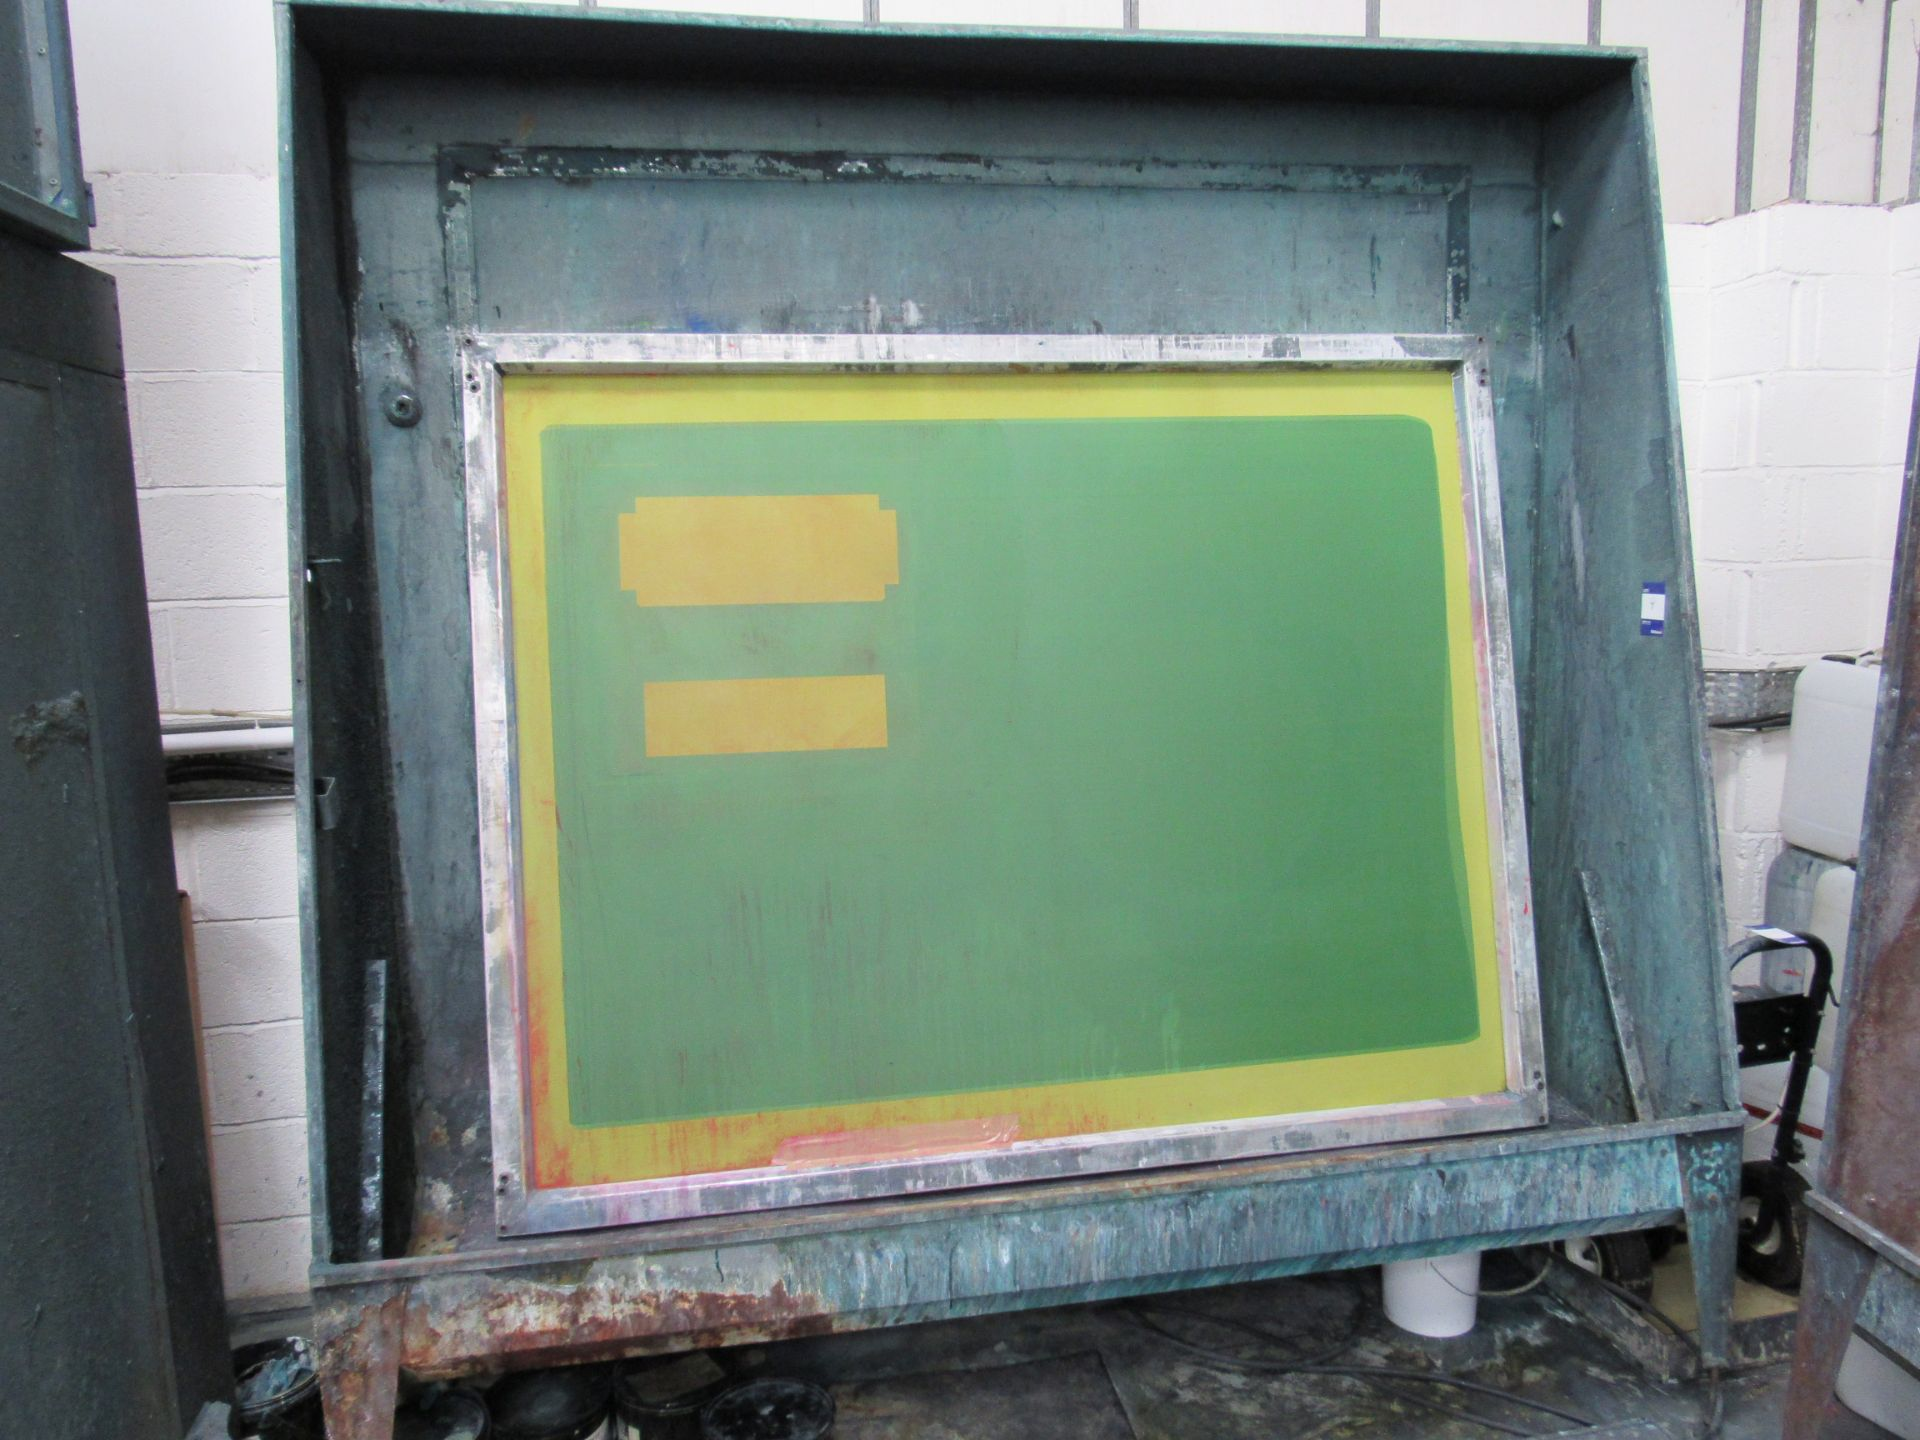 Screen Frame Wash Down Booth - Image 2 of 2